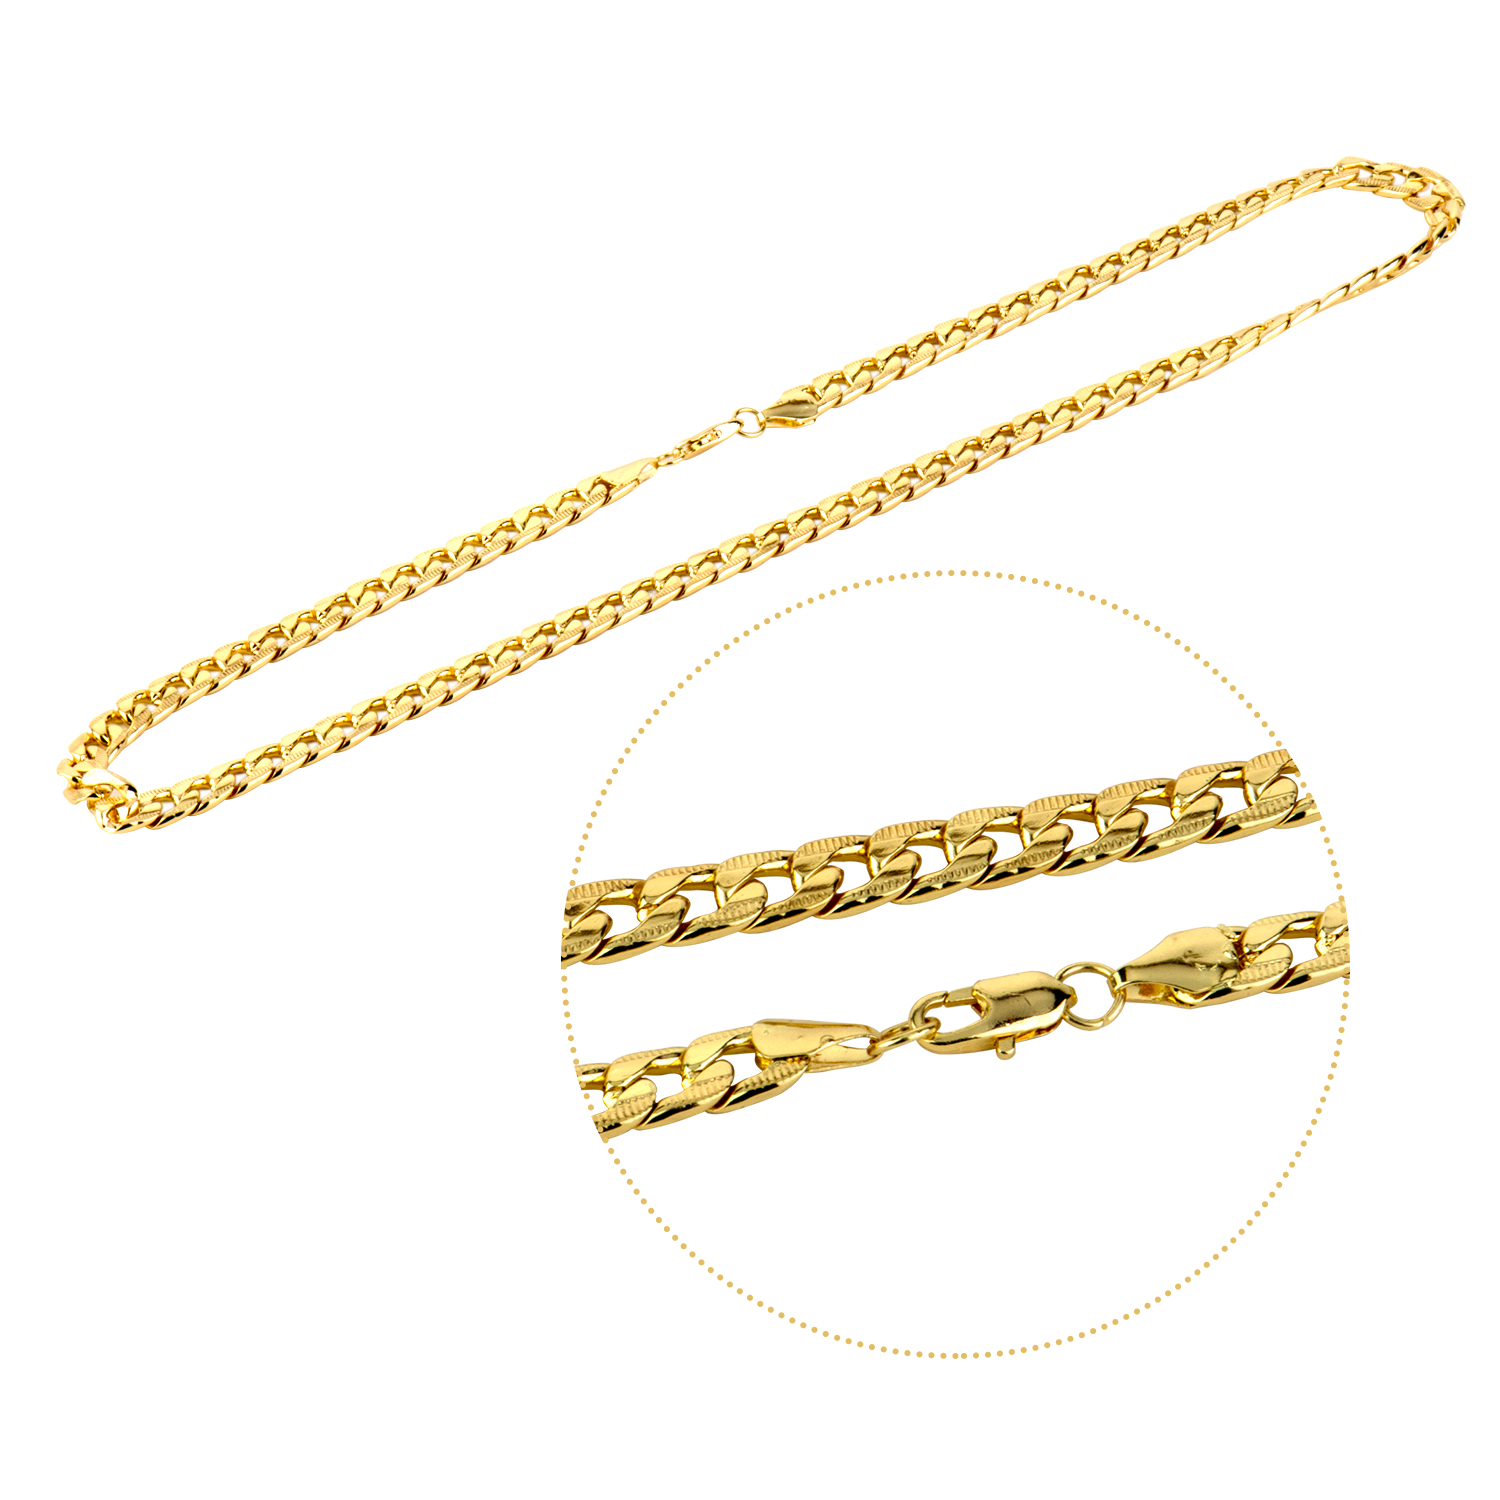 Men's Hiphop Necklace Stainless Steel  Link Chain Gold Black Silver Long Necklace for Men Fashion Jewelry Gift